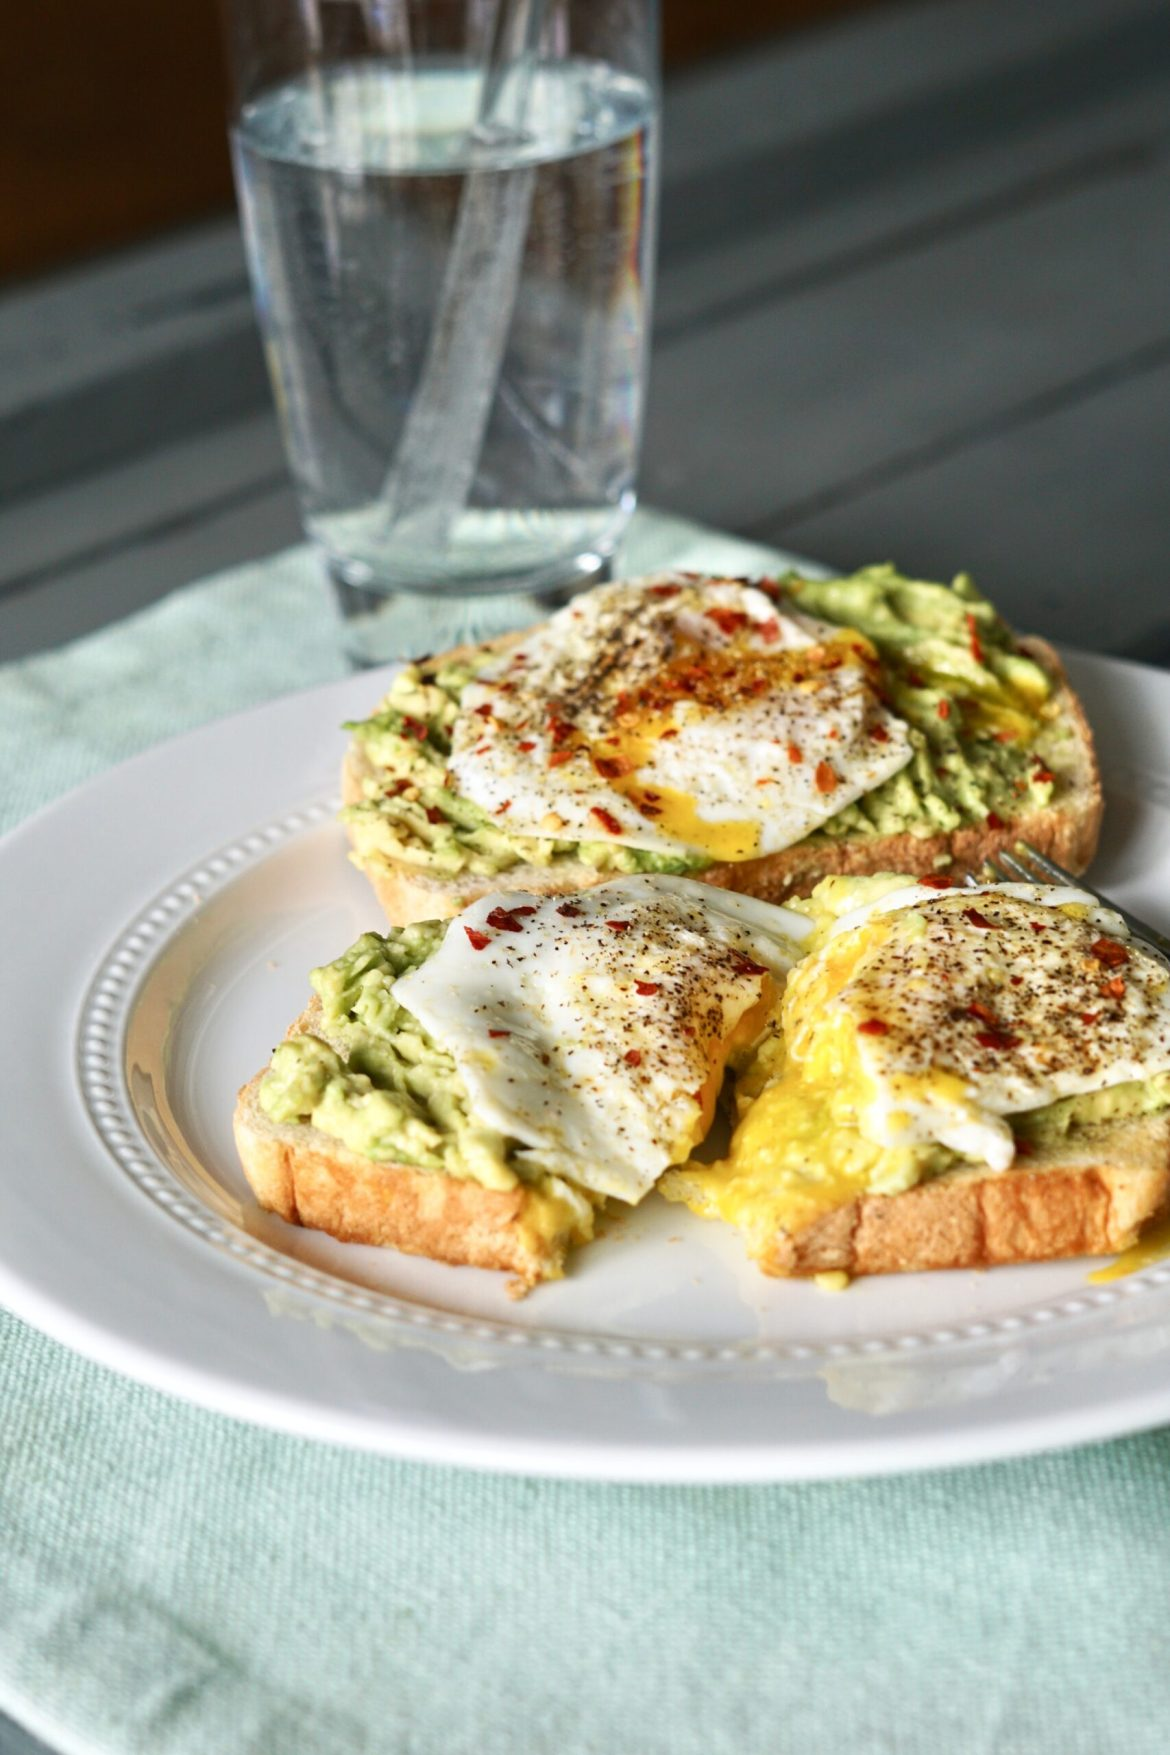 Avocado, egg, toast, Deidra Mangus, healthy breakfast recipes, healthy snacks, weight loss journey recipes, Successful online fitness coach PA, Elite Beachbody coach PA, Post partum weight loss, healthy military family, healthy blended family